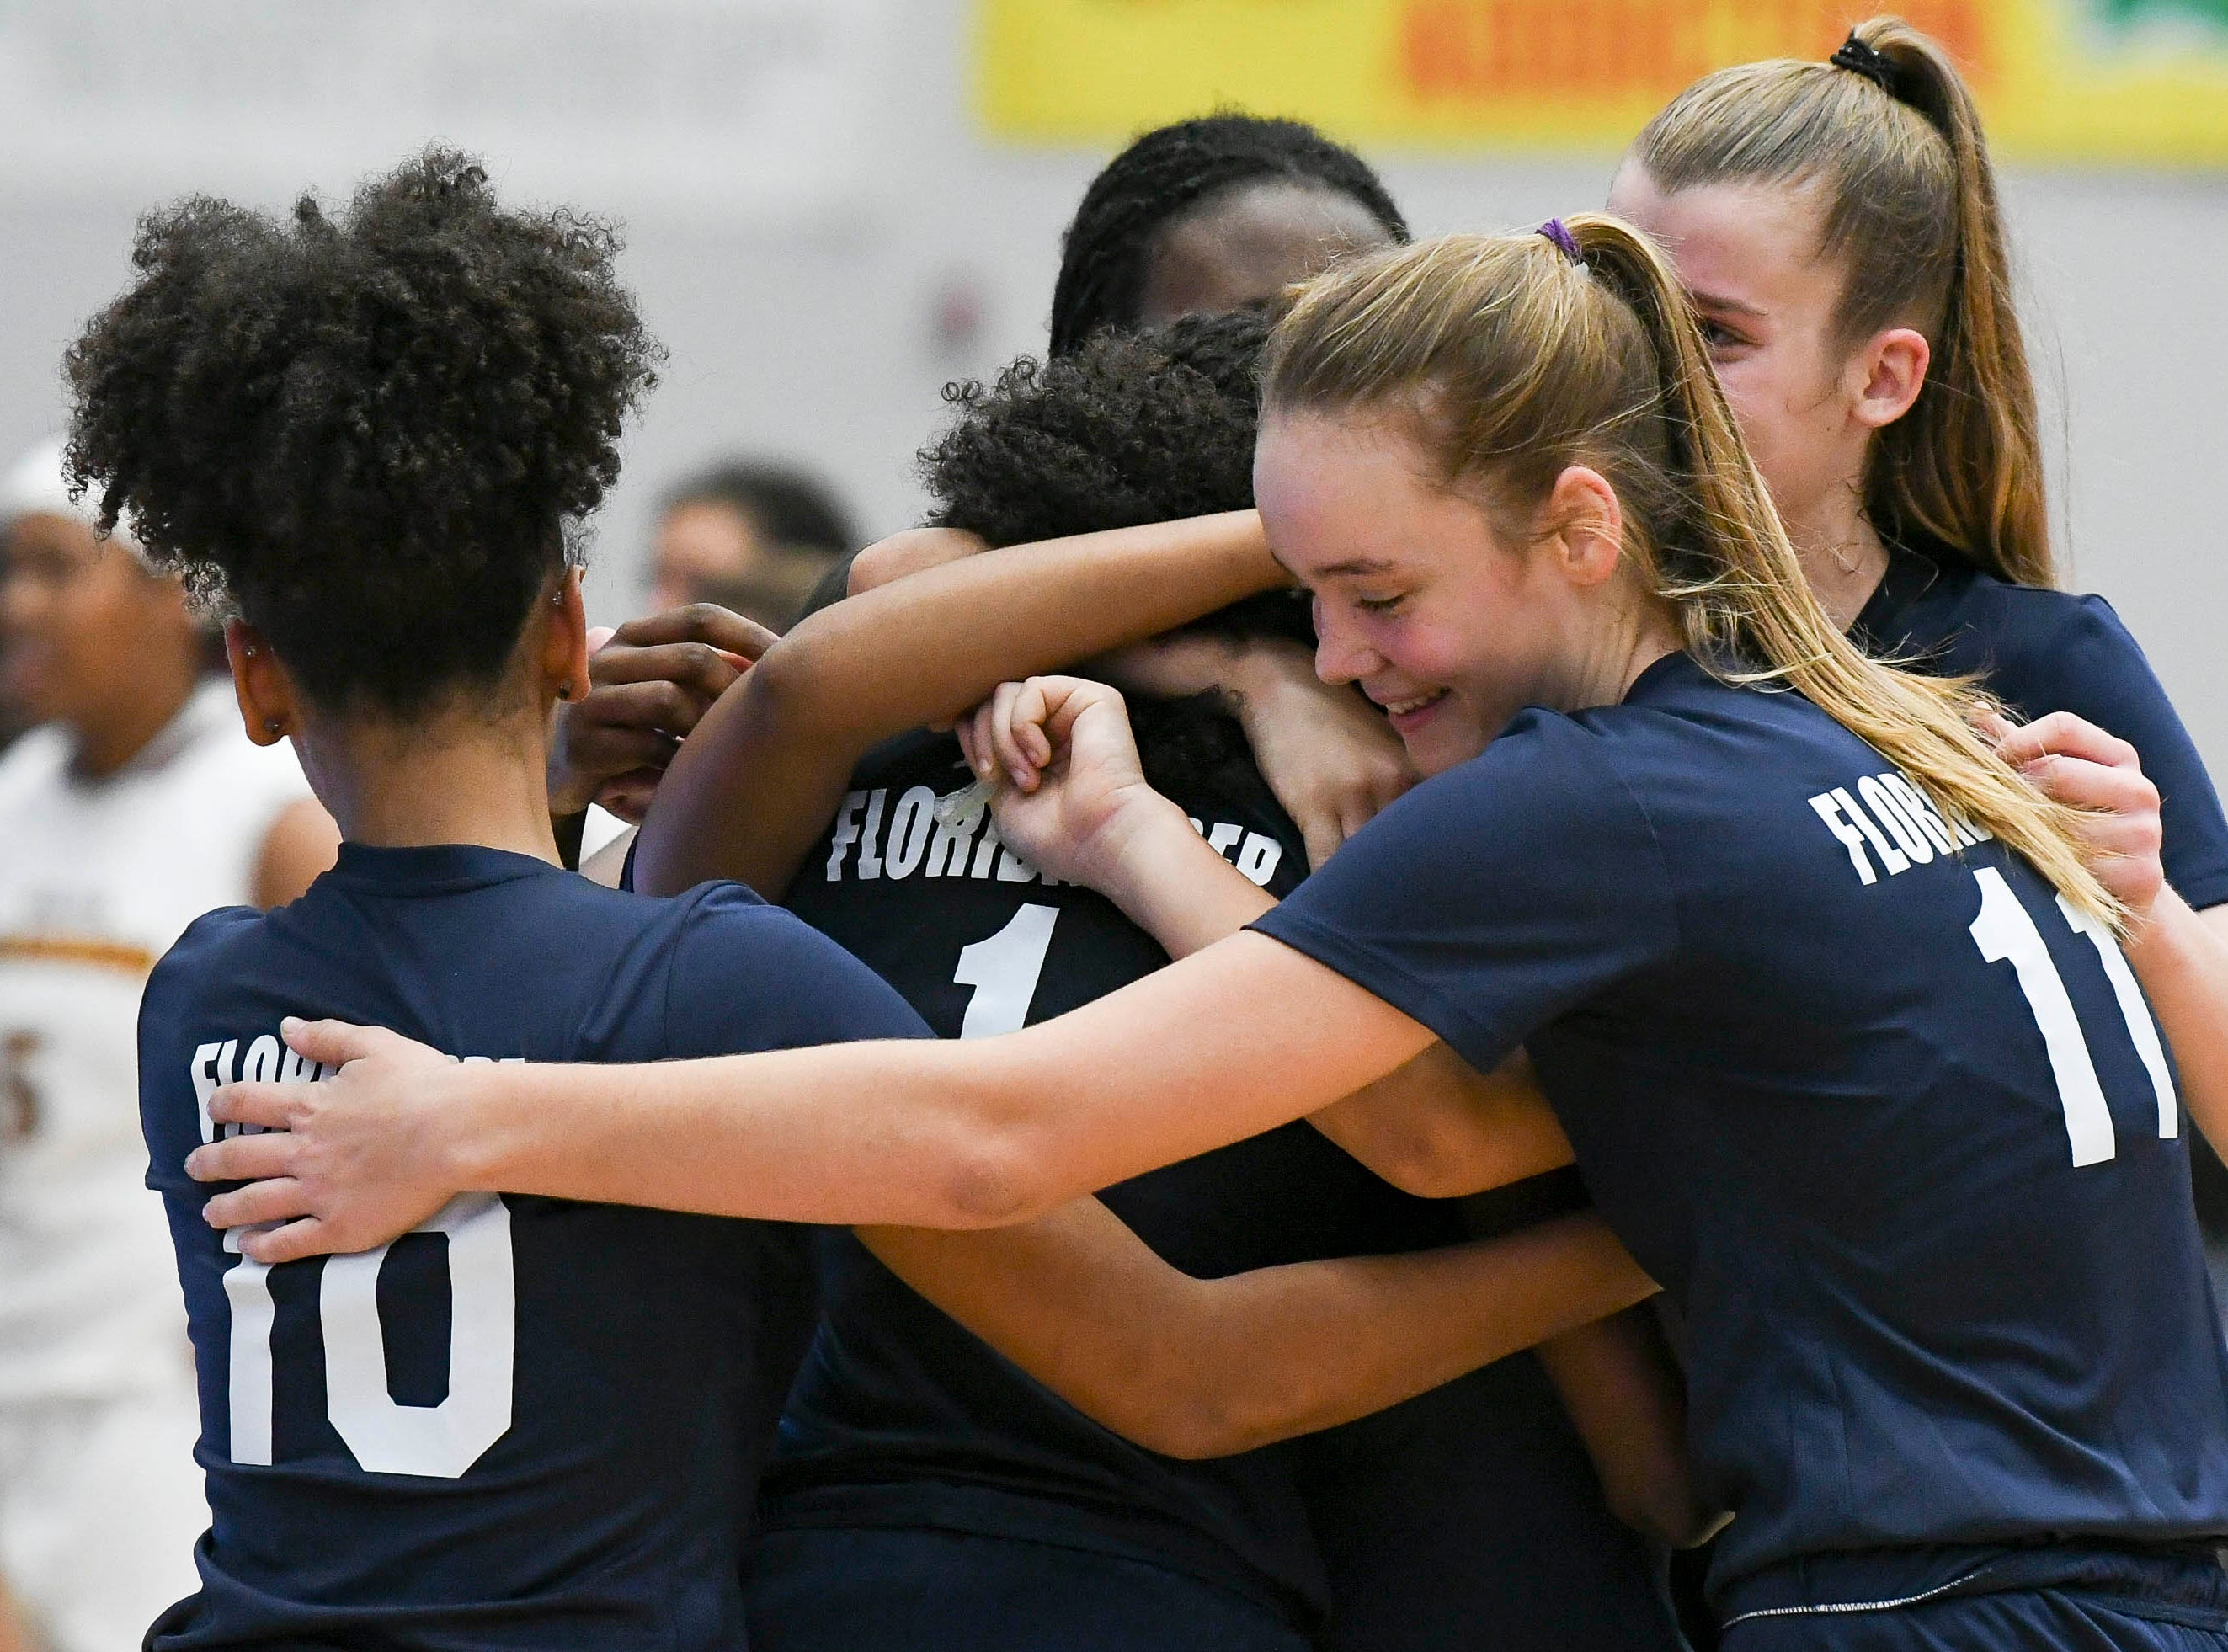 Florida Prep Falcons celebrate their victory over Bayshore in Tuesday's Class 2A state championship game.